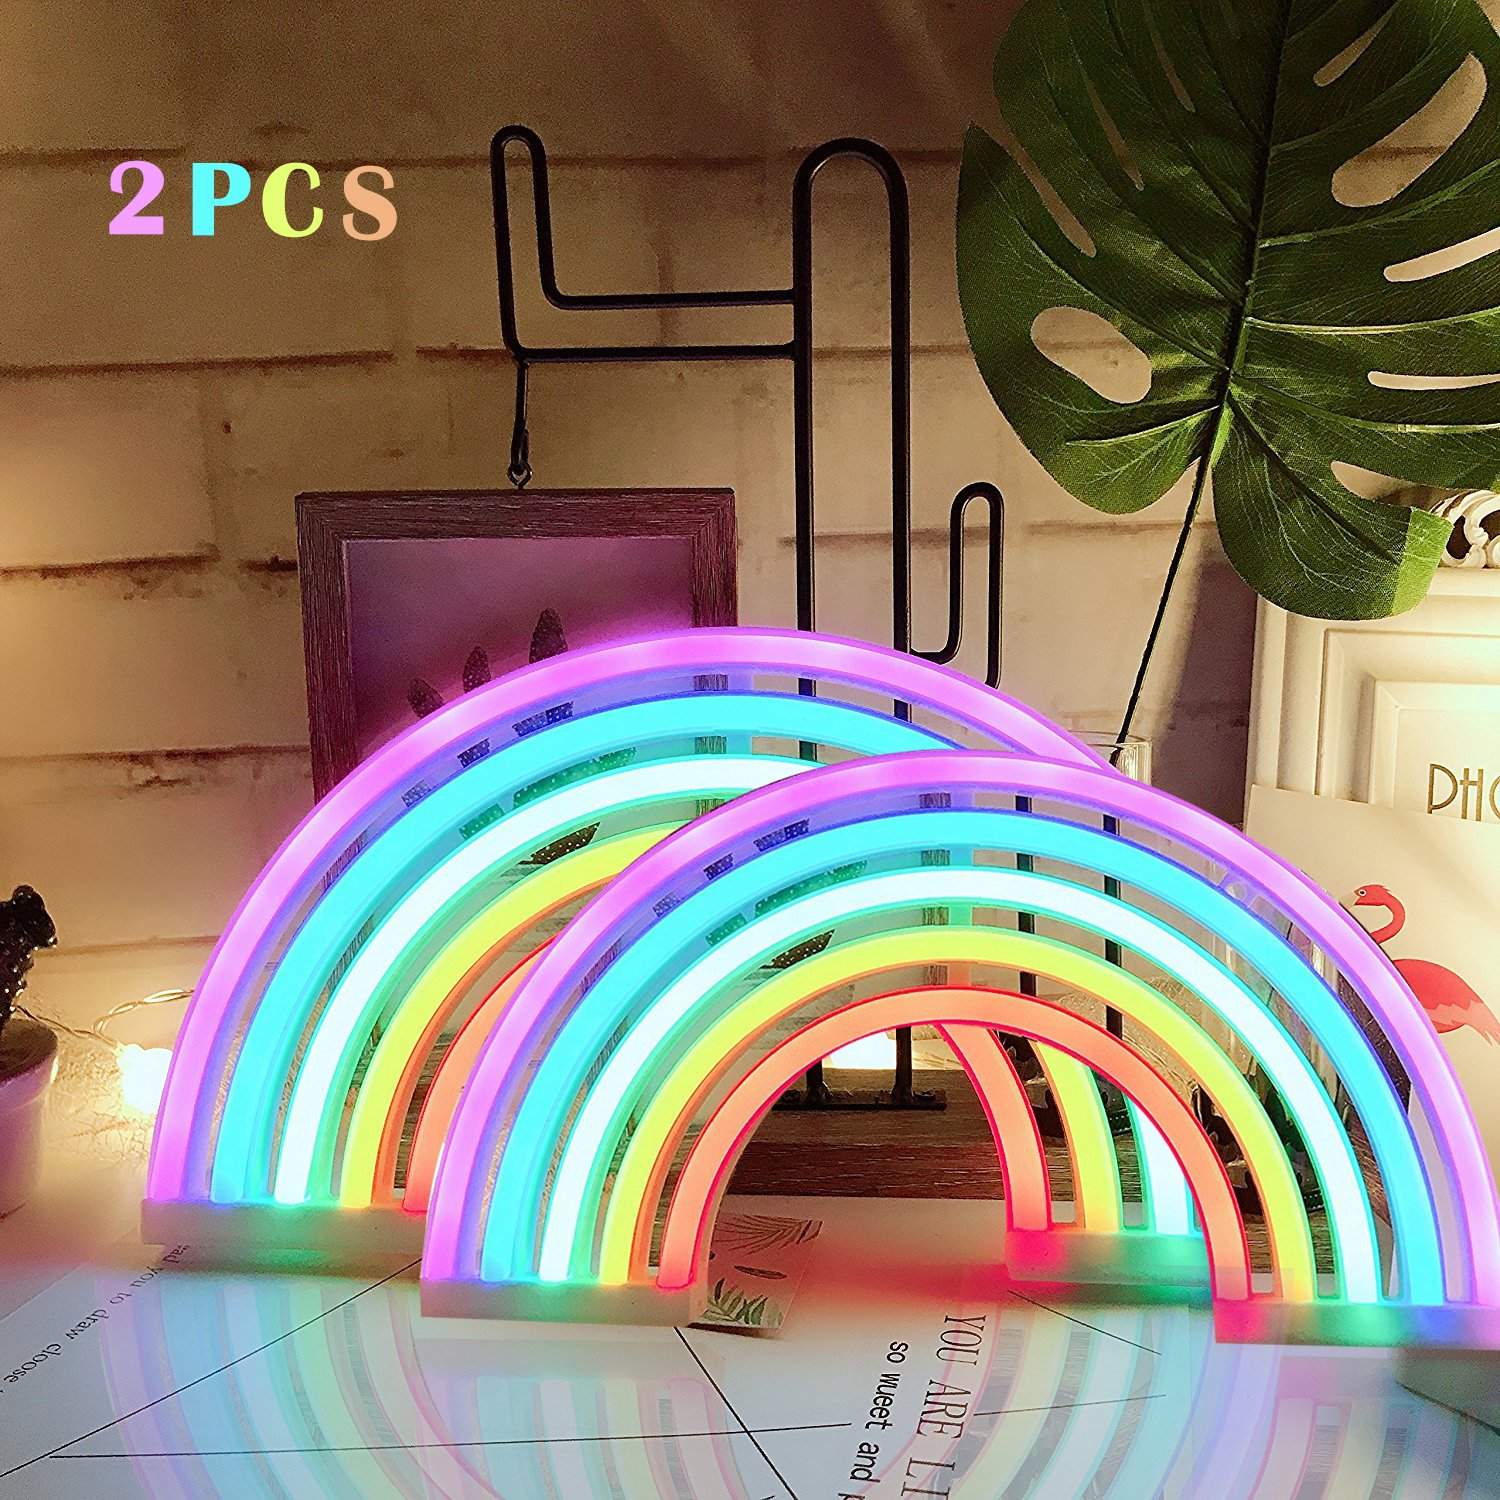 AIZESI 2PCS Rainbow Neon Light Sign,Neon Table Lamps,Marquee Battery Or USB Operated Table Led Ligths Wall Decoration for Girls Bedroom,Living Room,ChristmasParty as Kids Gift (Rainbow) by AIZESI (Image #1)